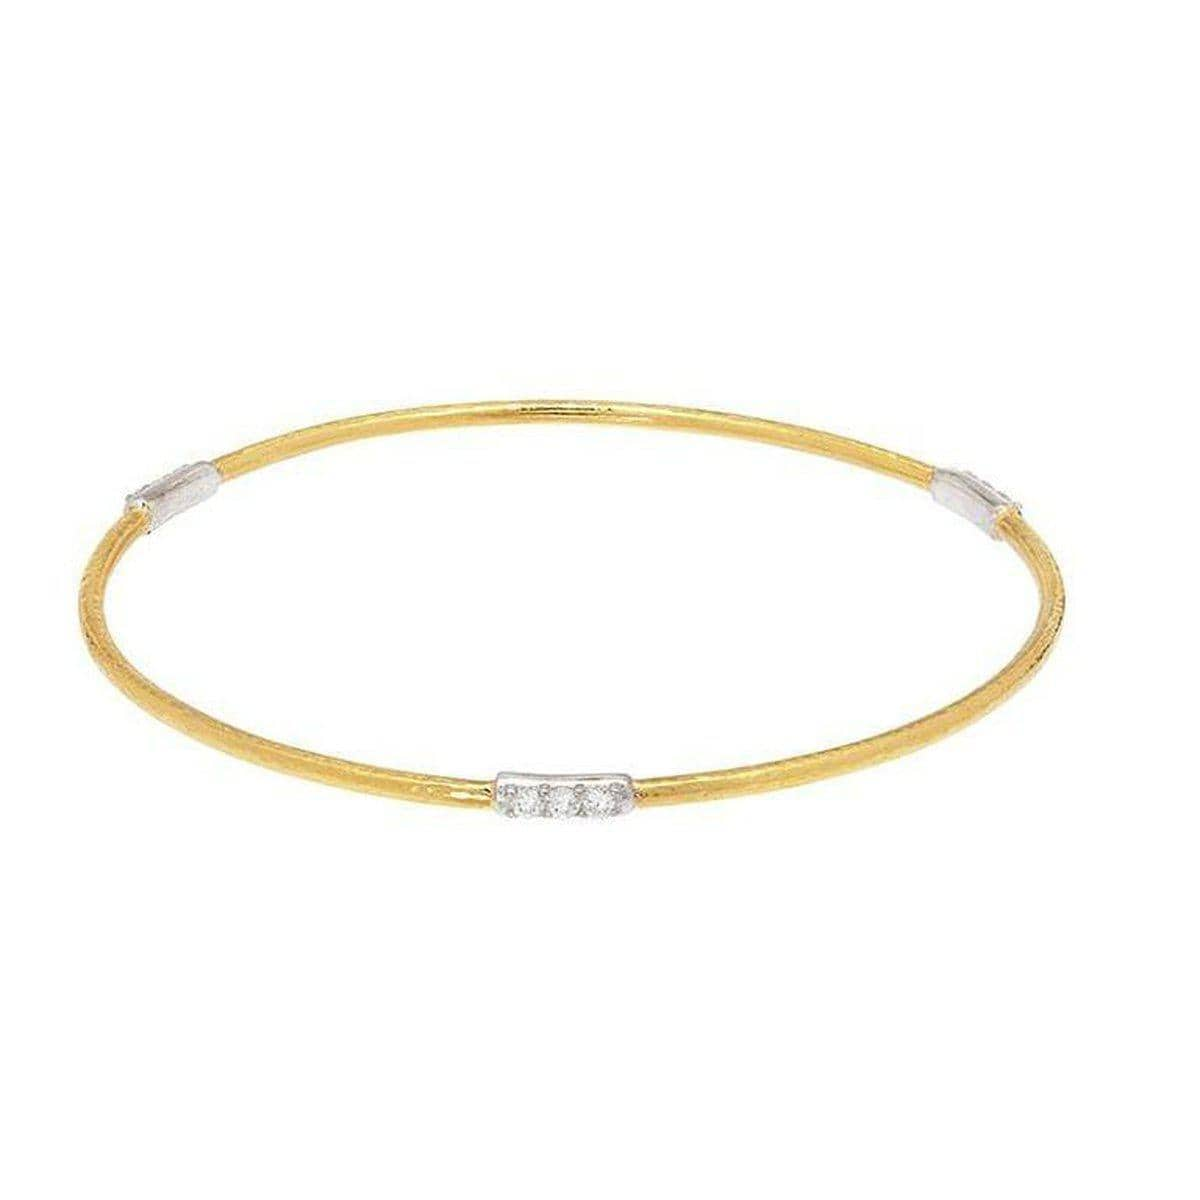 Delicate 22K Gold White Diamond Bracelet - BB290-3VP3DI